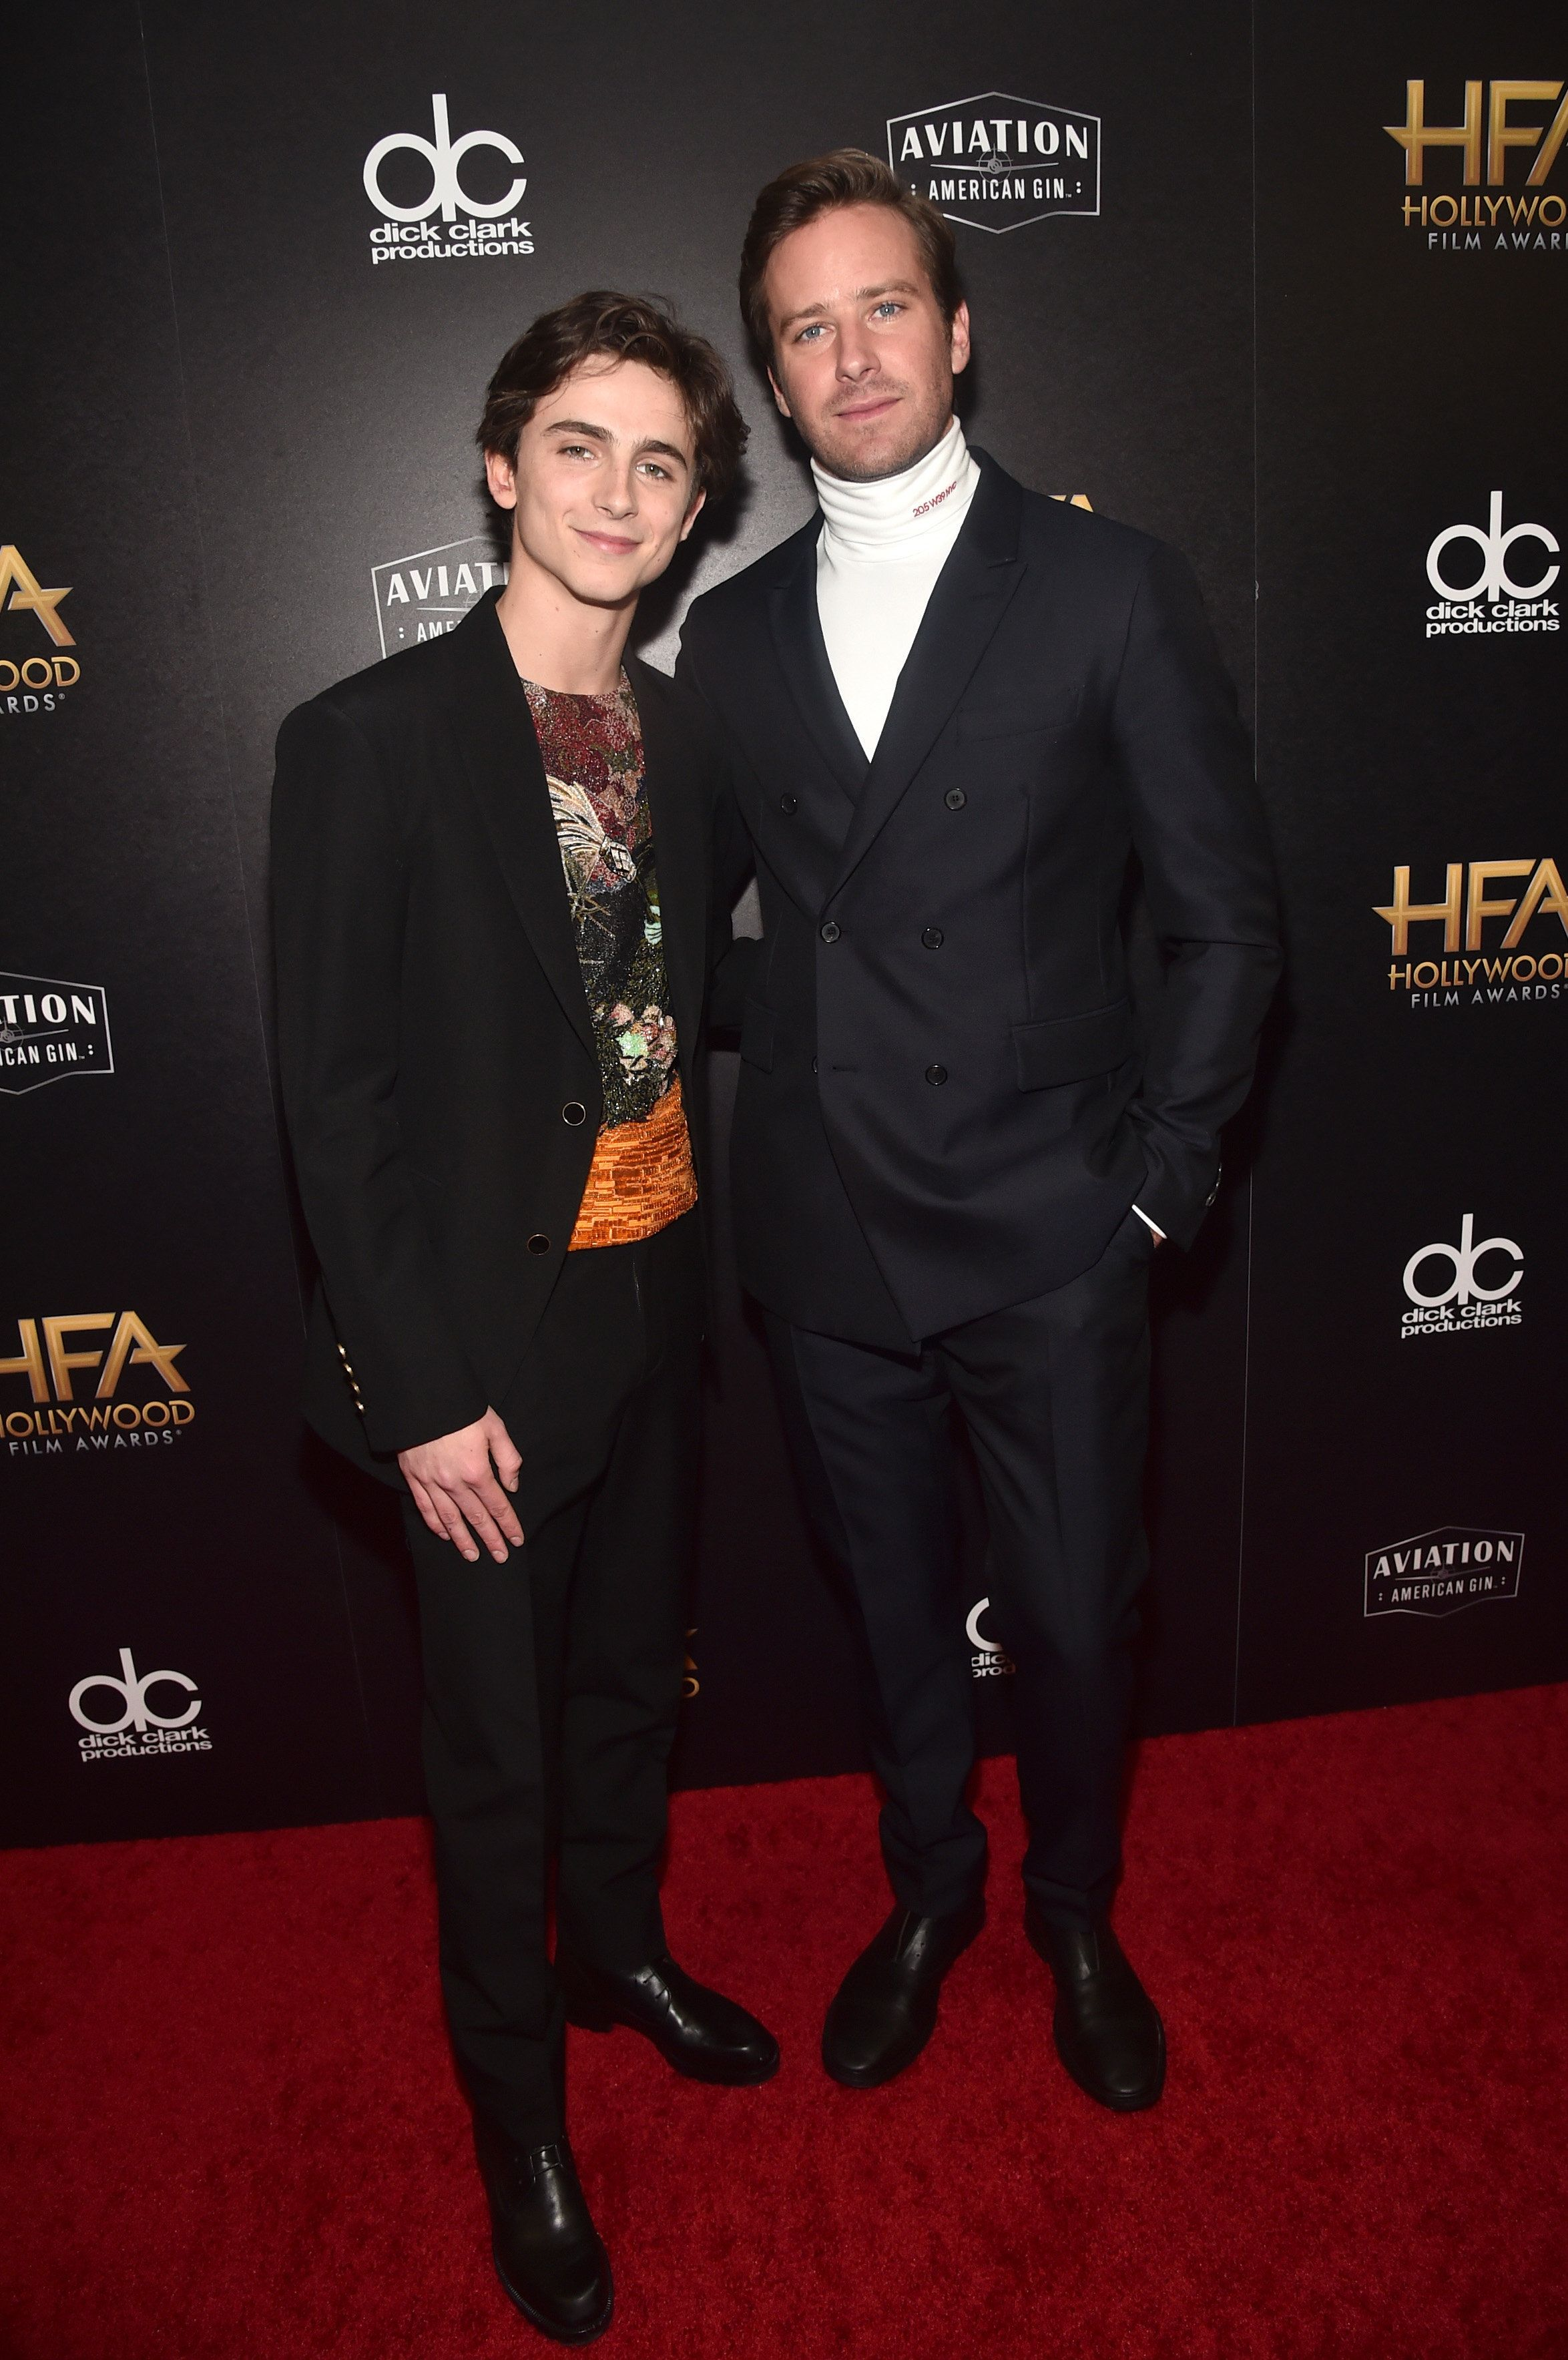 BEVERLY HILLS, CA - NOVEMBER 04:  Timothee Chalamet (L), Hollywood Supporting Actor Award recipient, poses with Armie Hammer in the press room during the 22nd Annual Hollywood Film Awards at The Beverly Hilton Hotel on November 4, 2018 in Beverly Hills, California.  (Photo by Alberto E. Rodriguez/Getty Images for HFA)